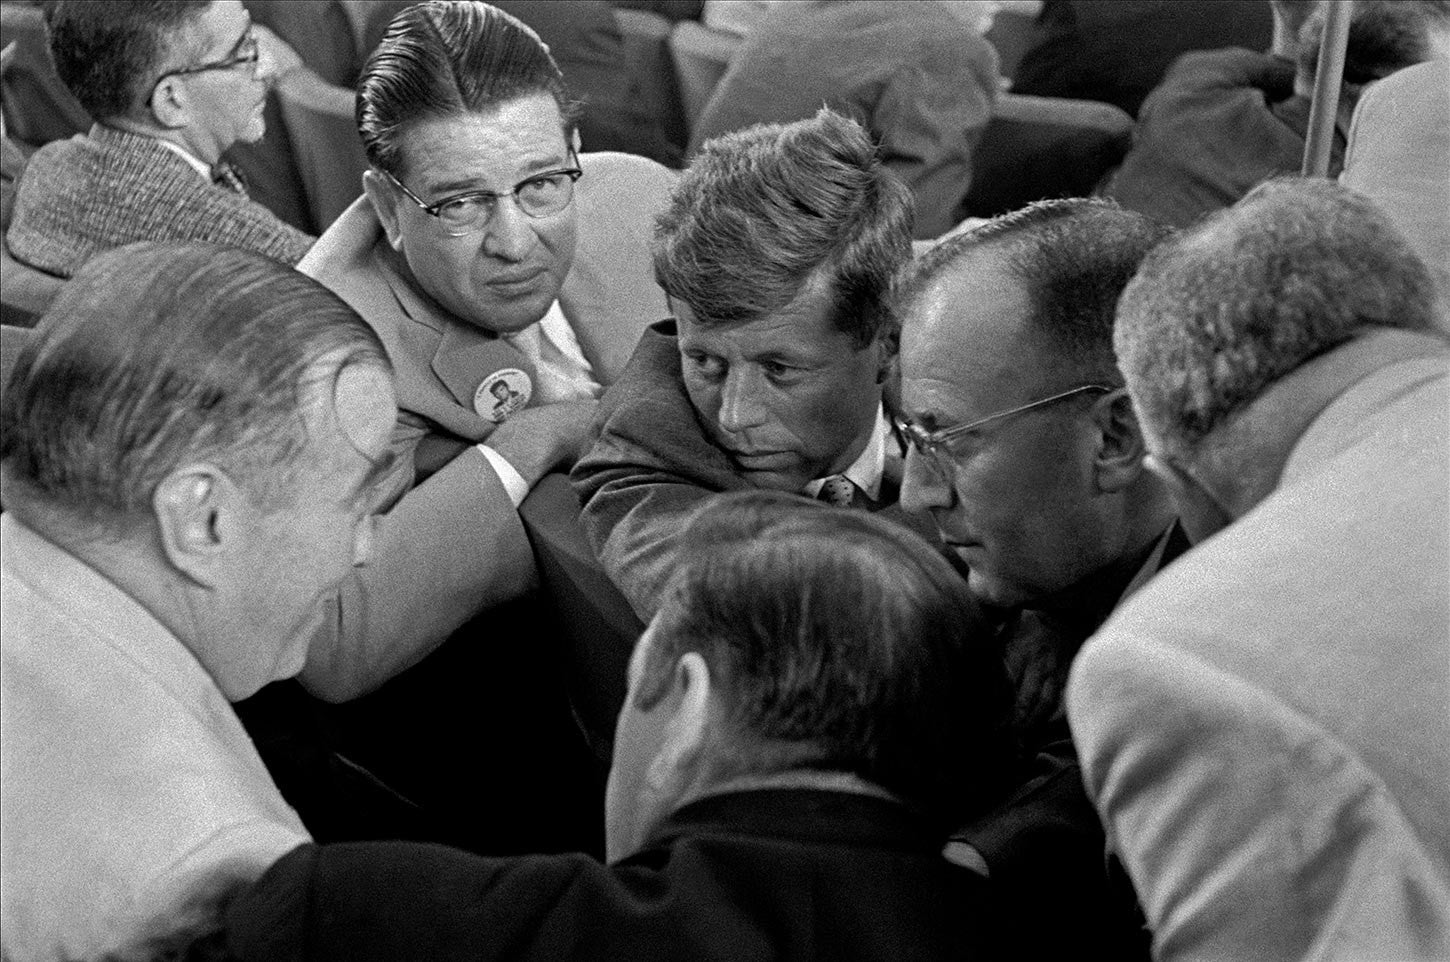 John F. Kennedy at the Democratic Convention in Chicago. 1956.